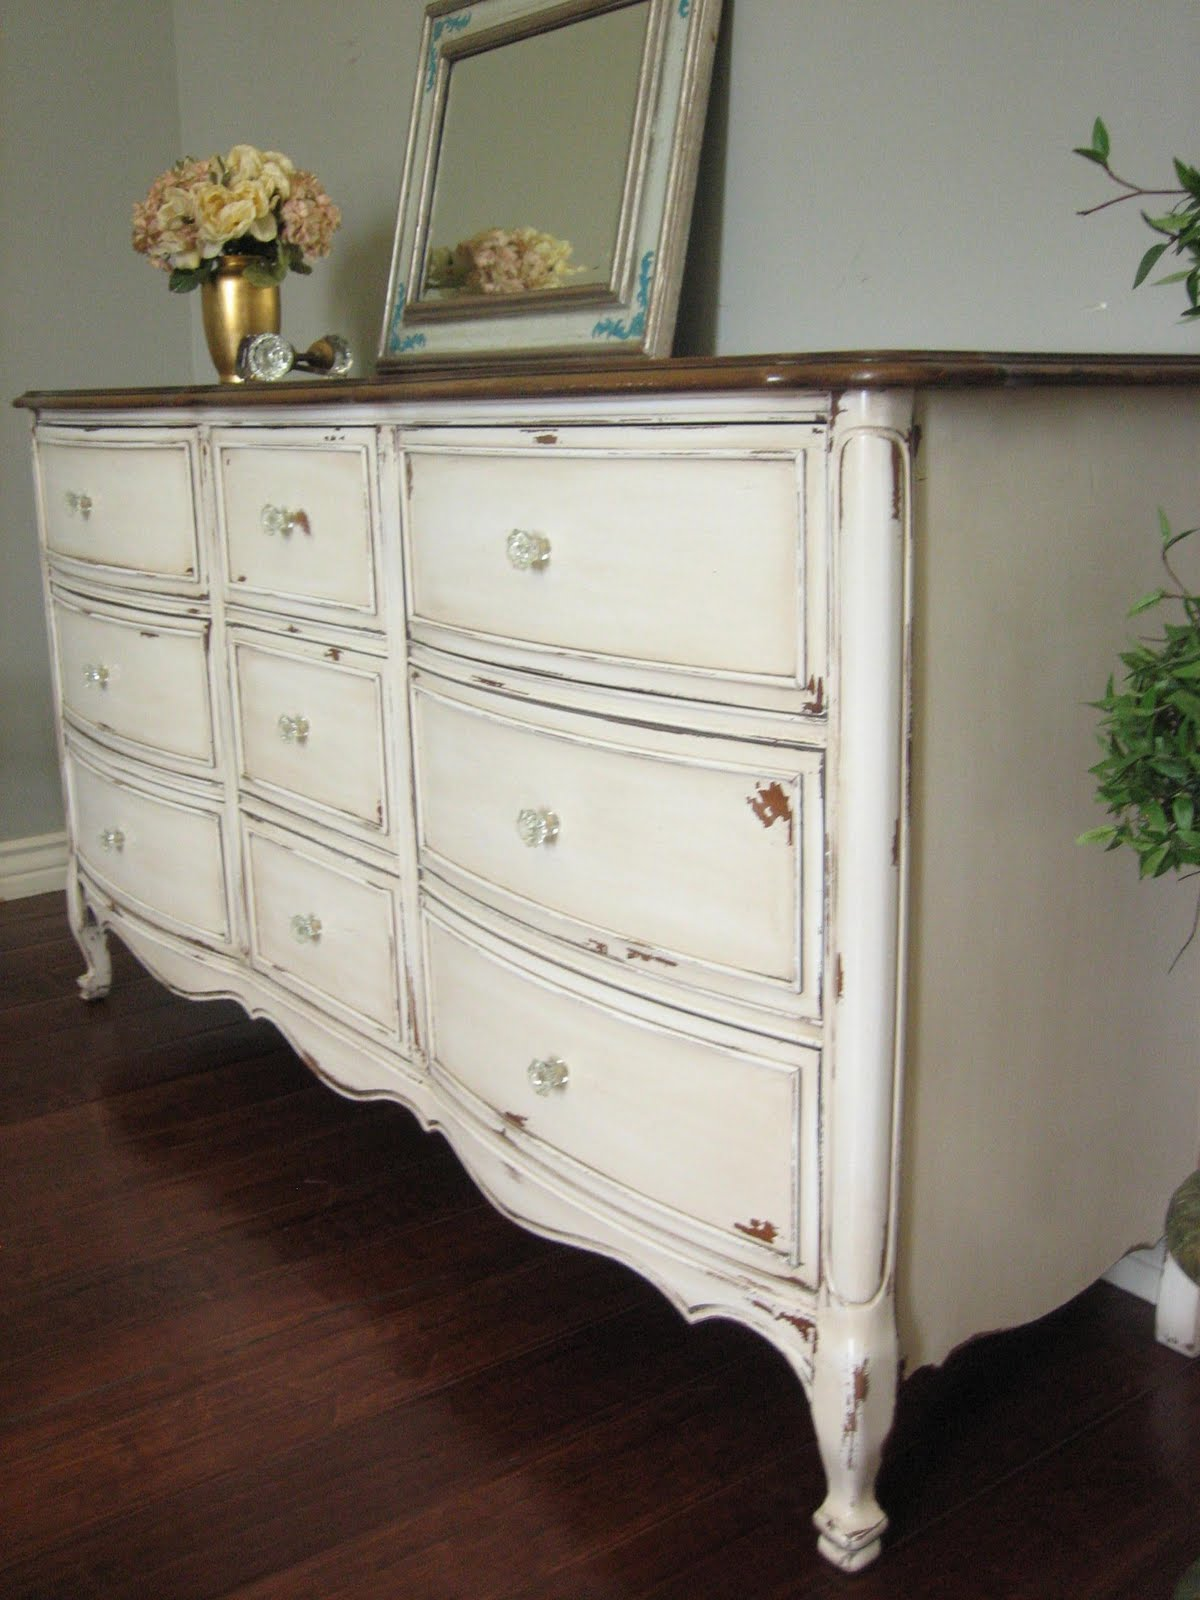 Antiqued French Dresser Country Bedroom Furniture Ideas Hand Painted Vintage Distressed Antique Vanity Antic Dressers With Mirrors Hardware Apppie Org